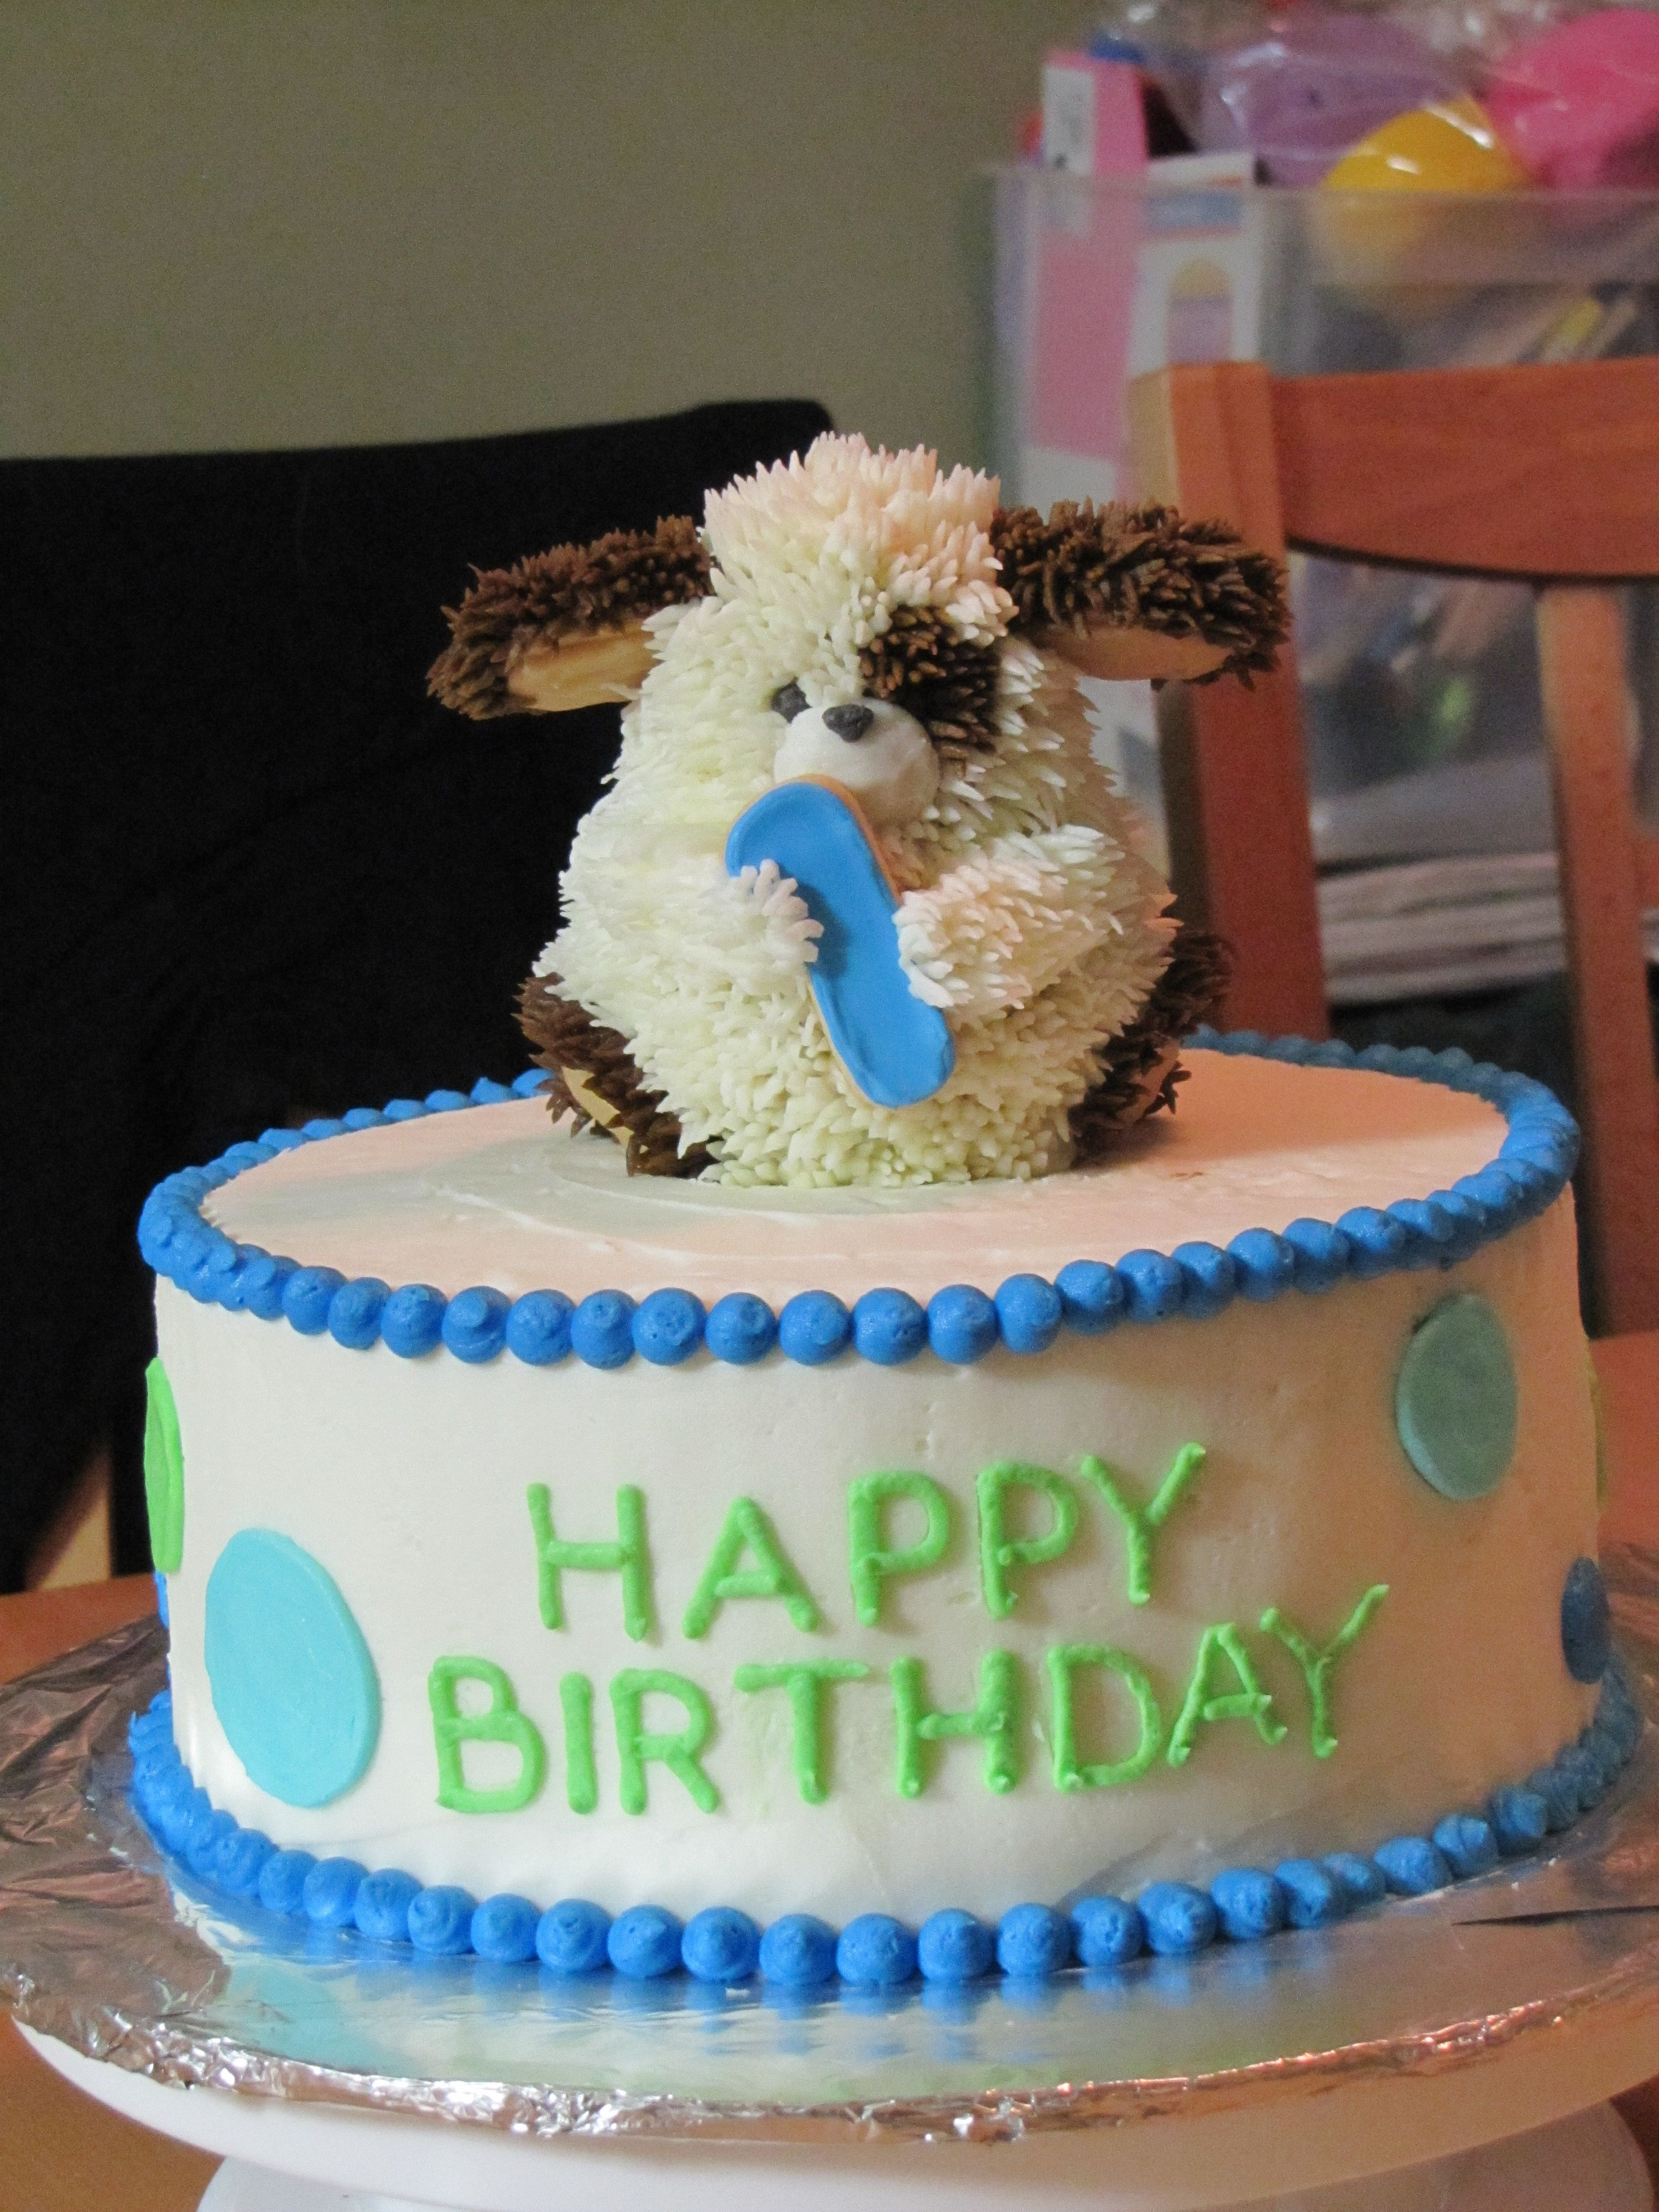 Peachy Boys 1St Birthday Cake With Puppy Cake On Top For Bday Boy To Eat Funny Birthday Cards Online Drosicarndamsfinfo